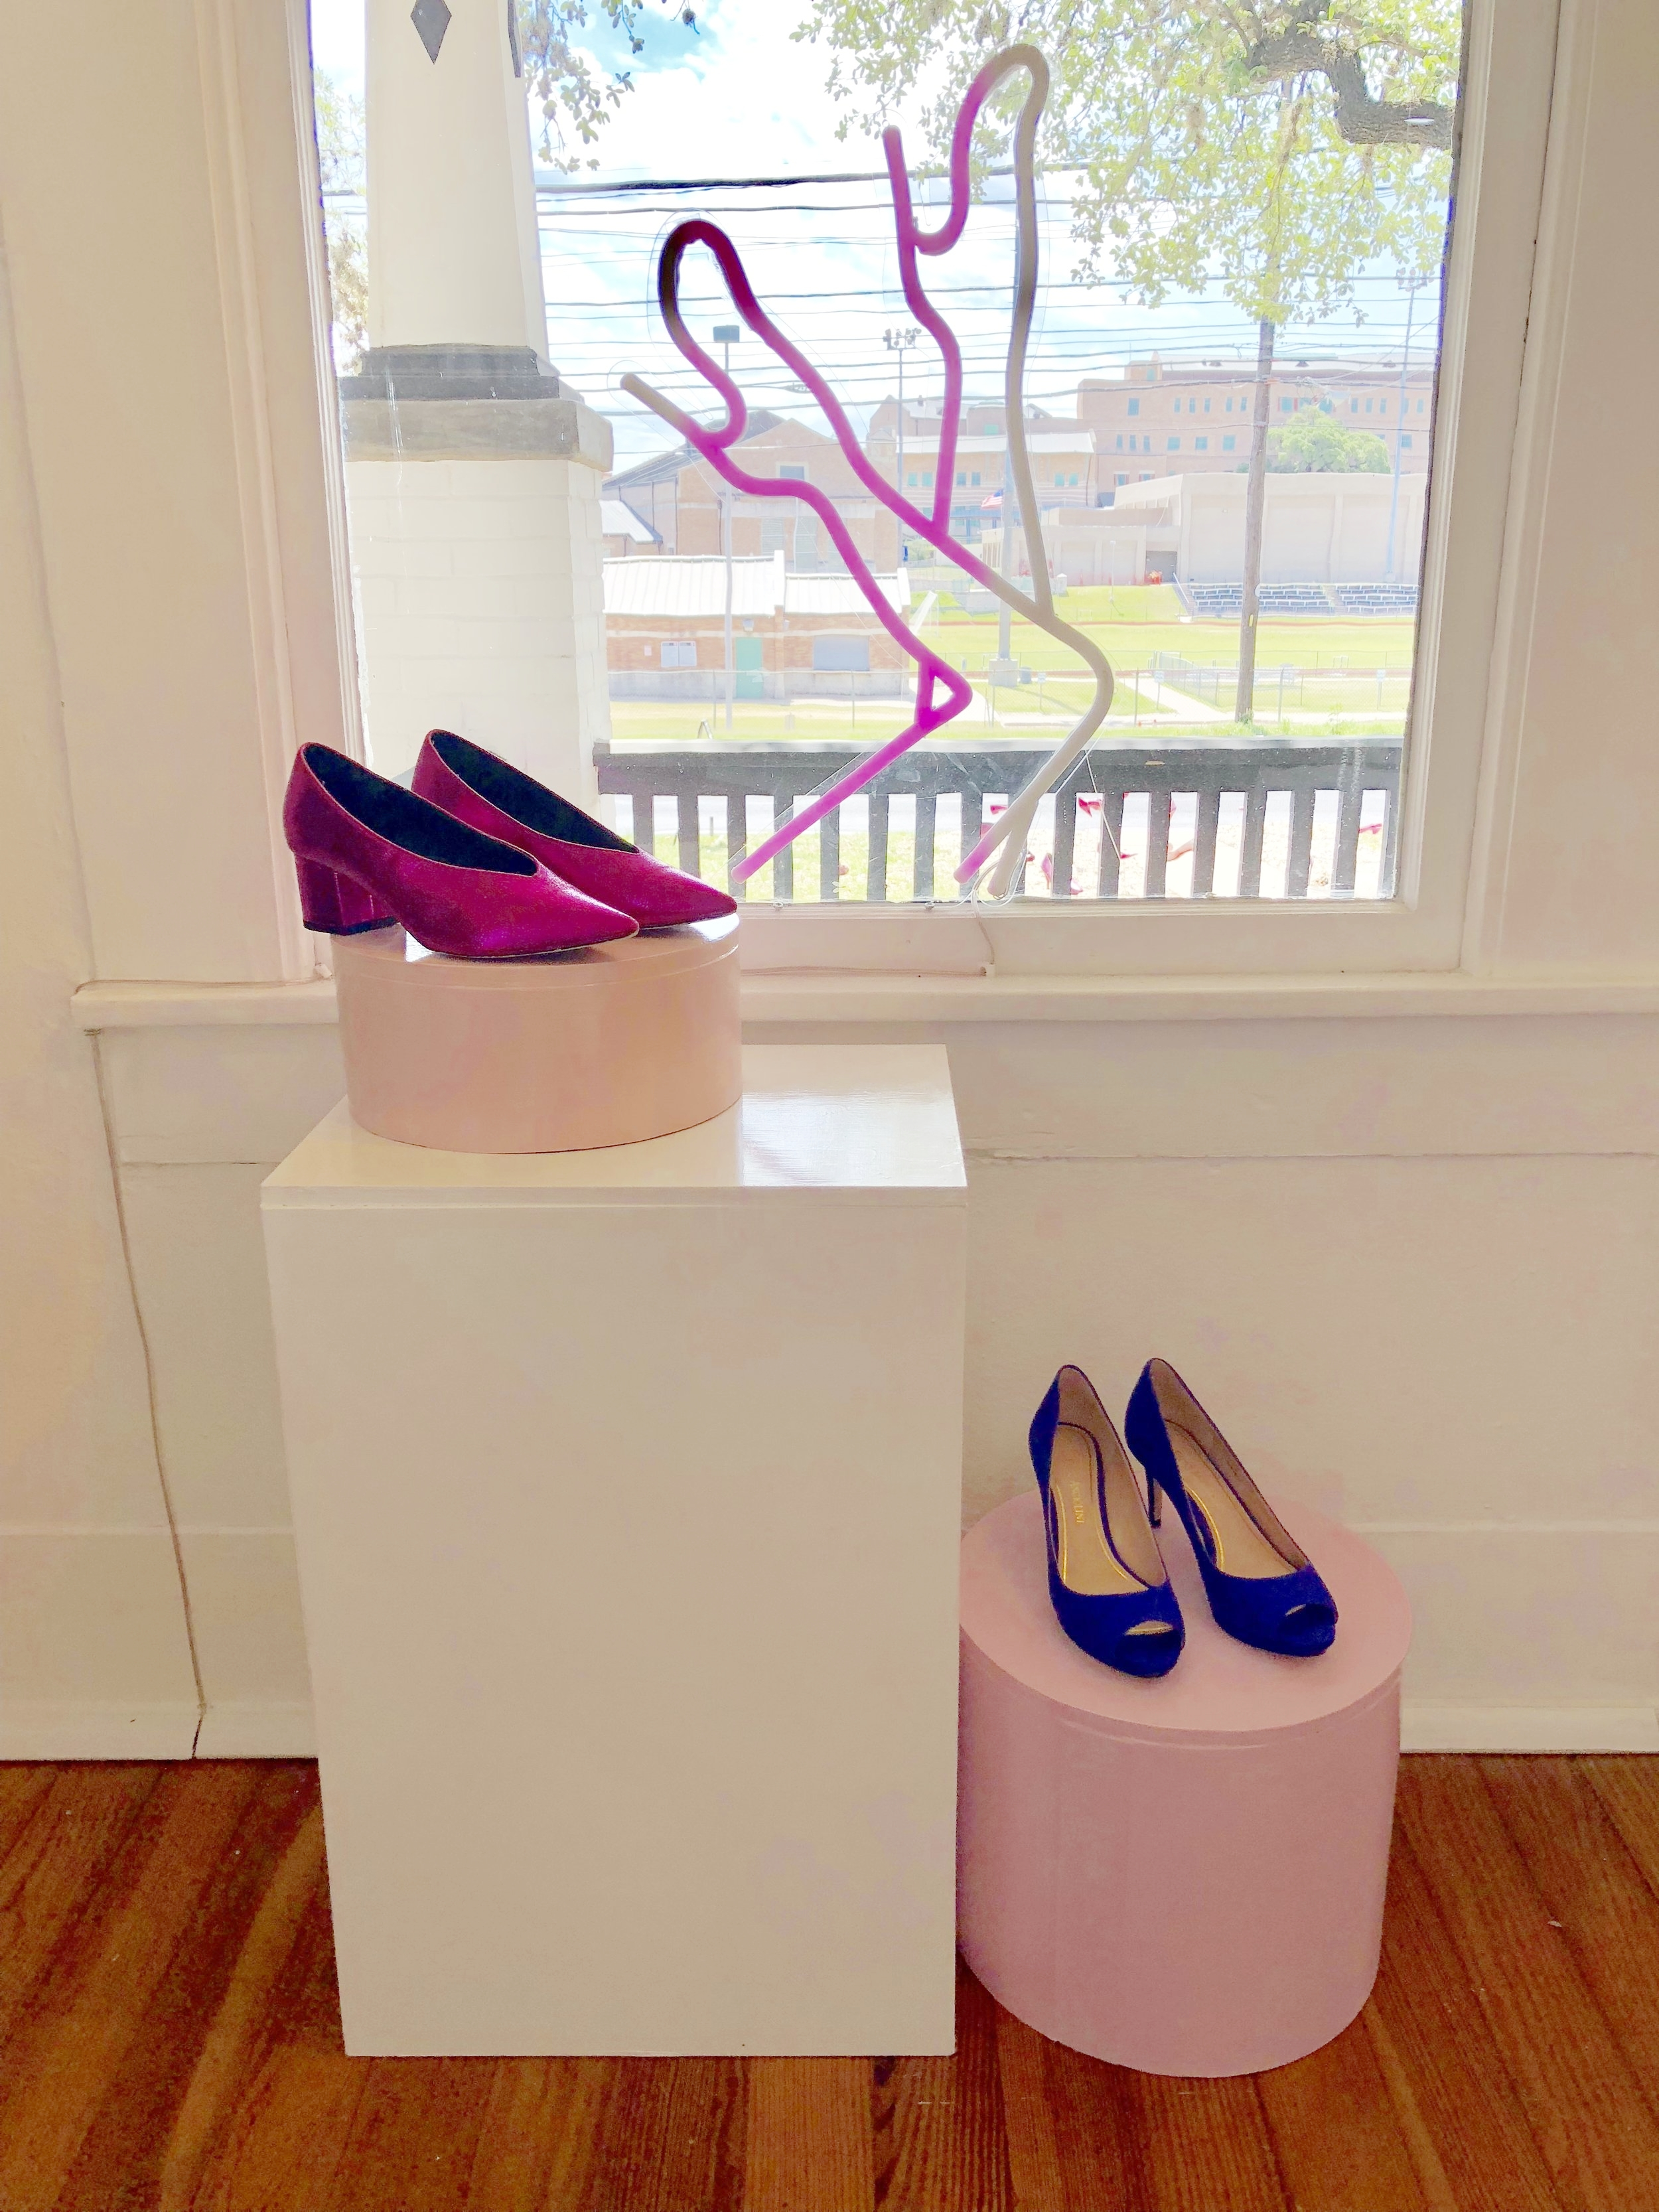 The window display at The Art of Shoes shows off a few eclectic options for summer 2018.